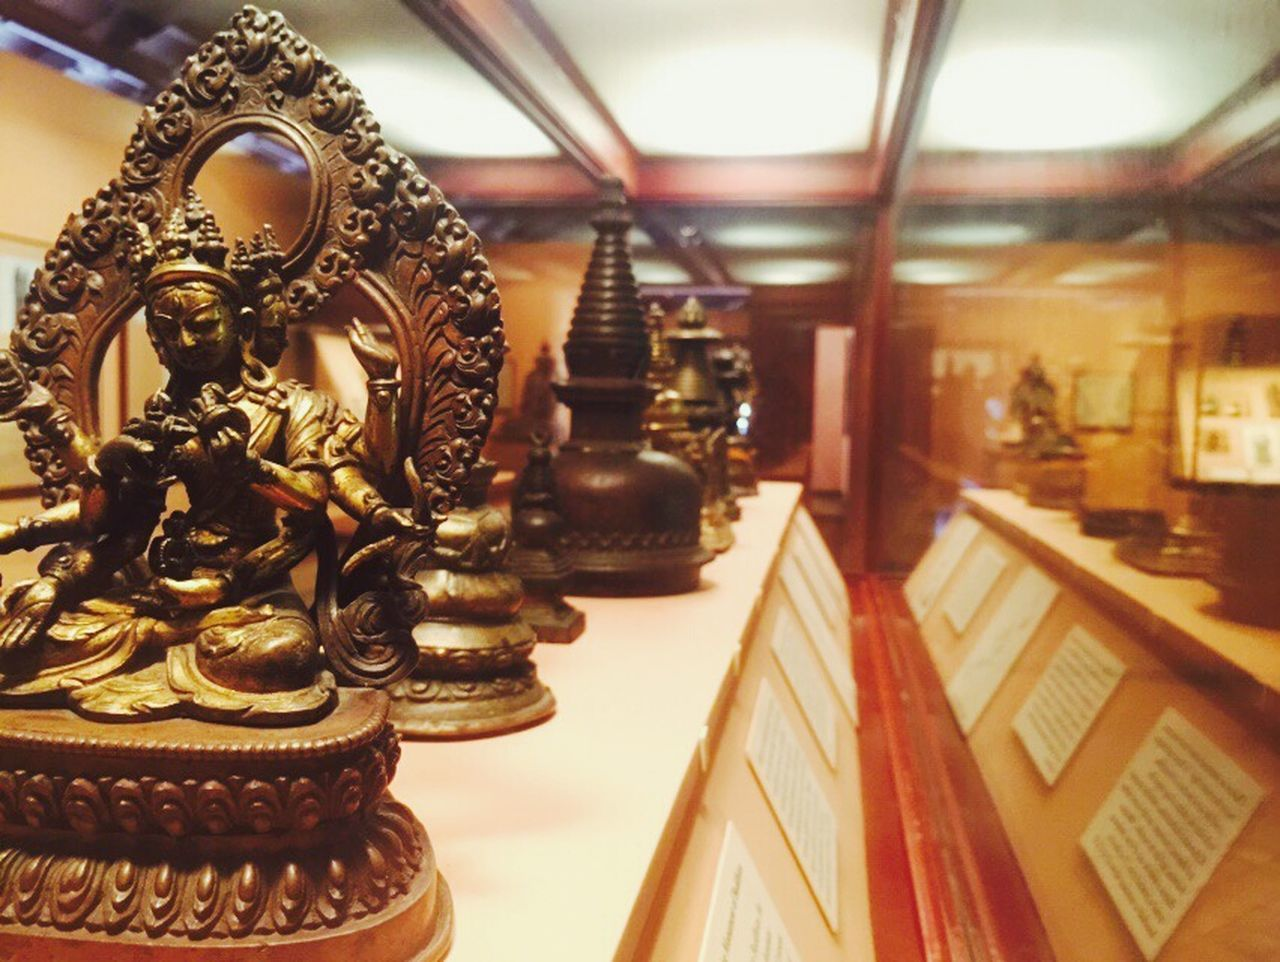 Statues Old Art Style Museum Visit Artistic Handicraft Nepalese Style Design EyeEm Best Shots EyeEm Gallery Peace Beauty Photography Beautiful Nepal Nepal